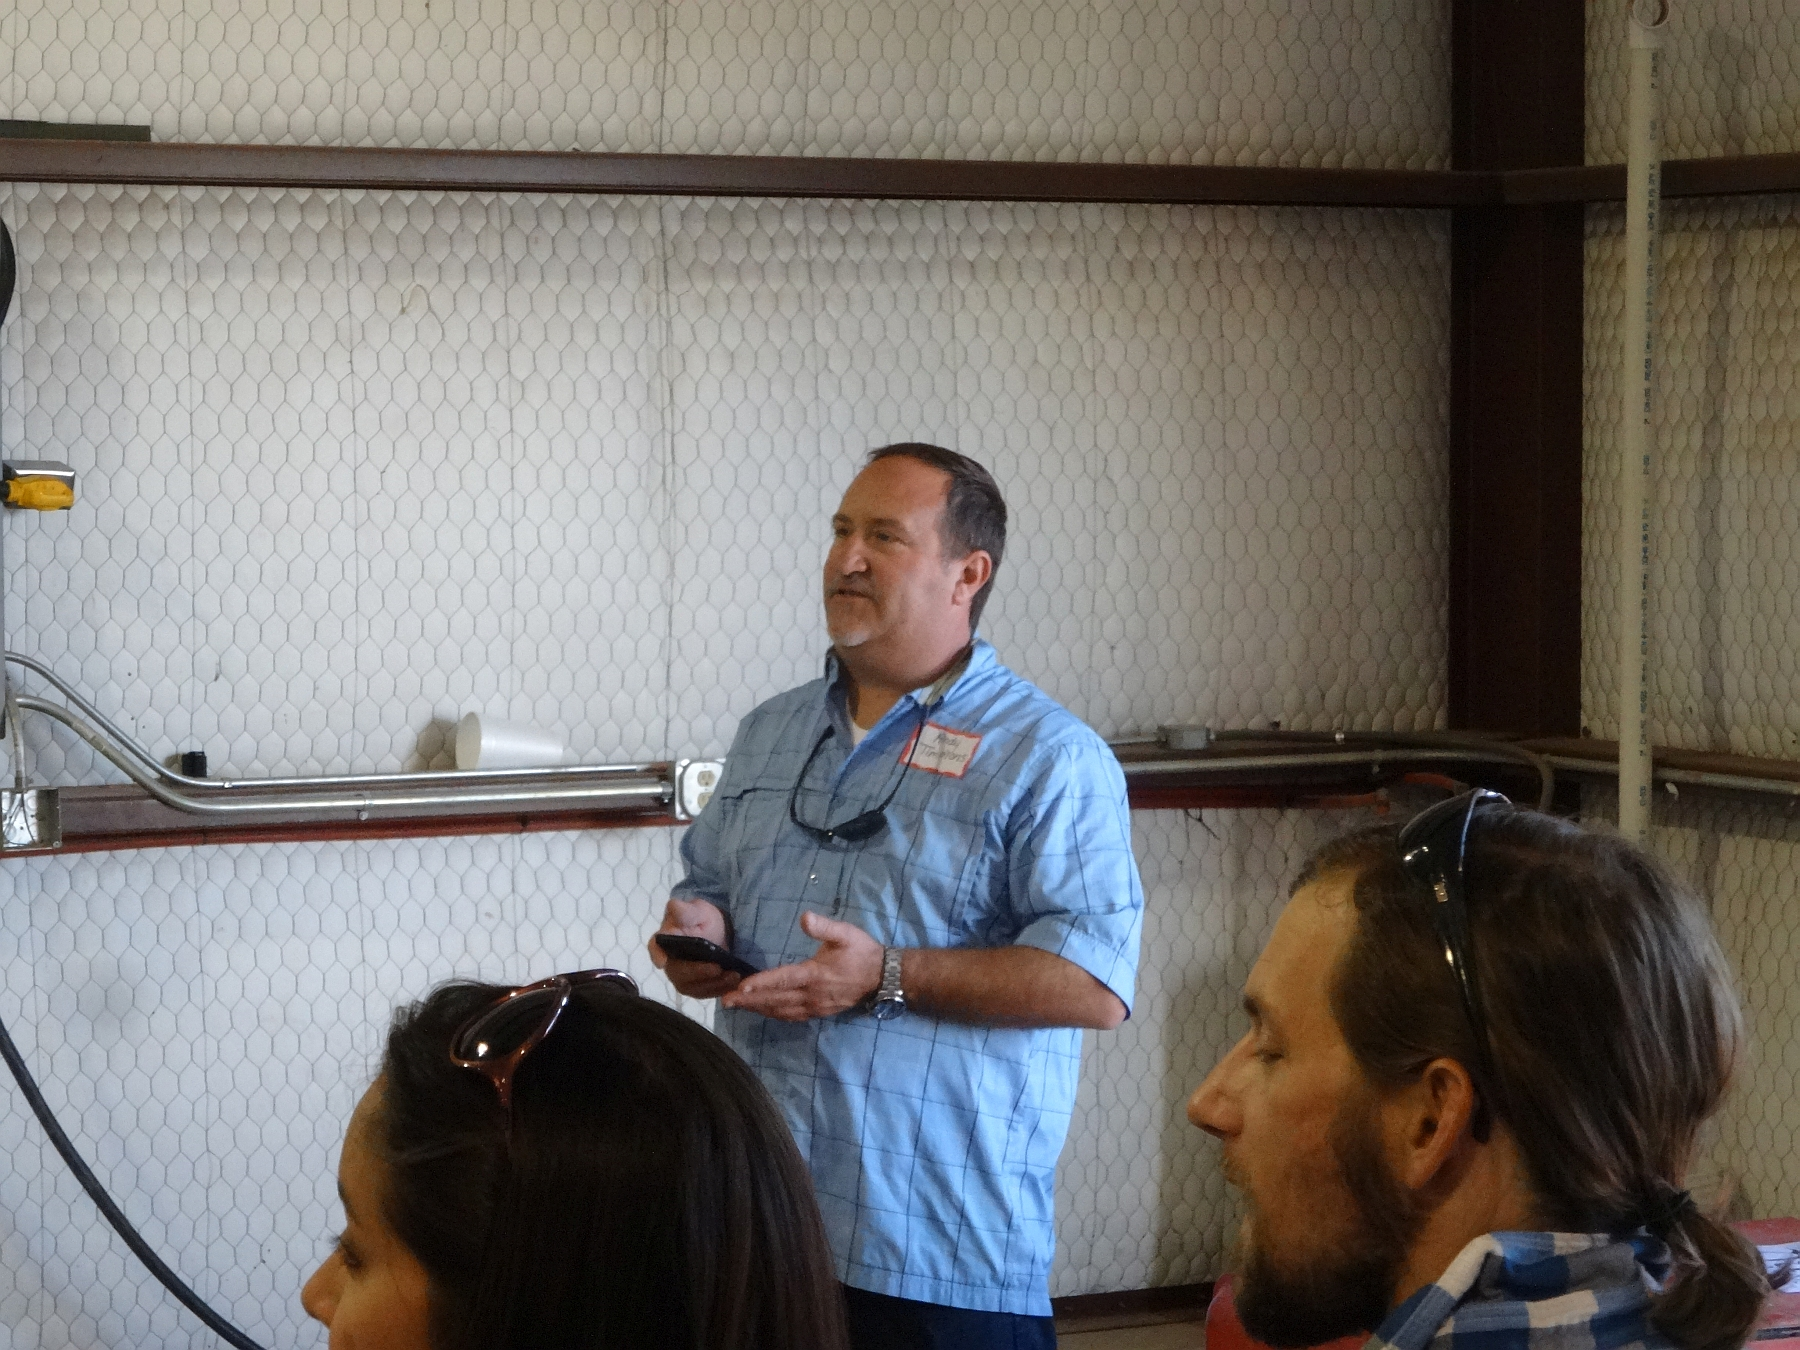 Andy Timmons of Lost Draw Vineyards/Cellars